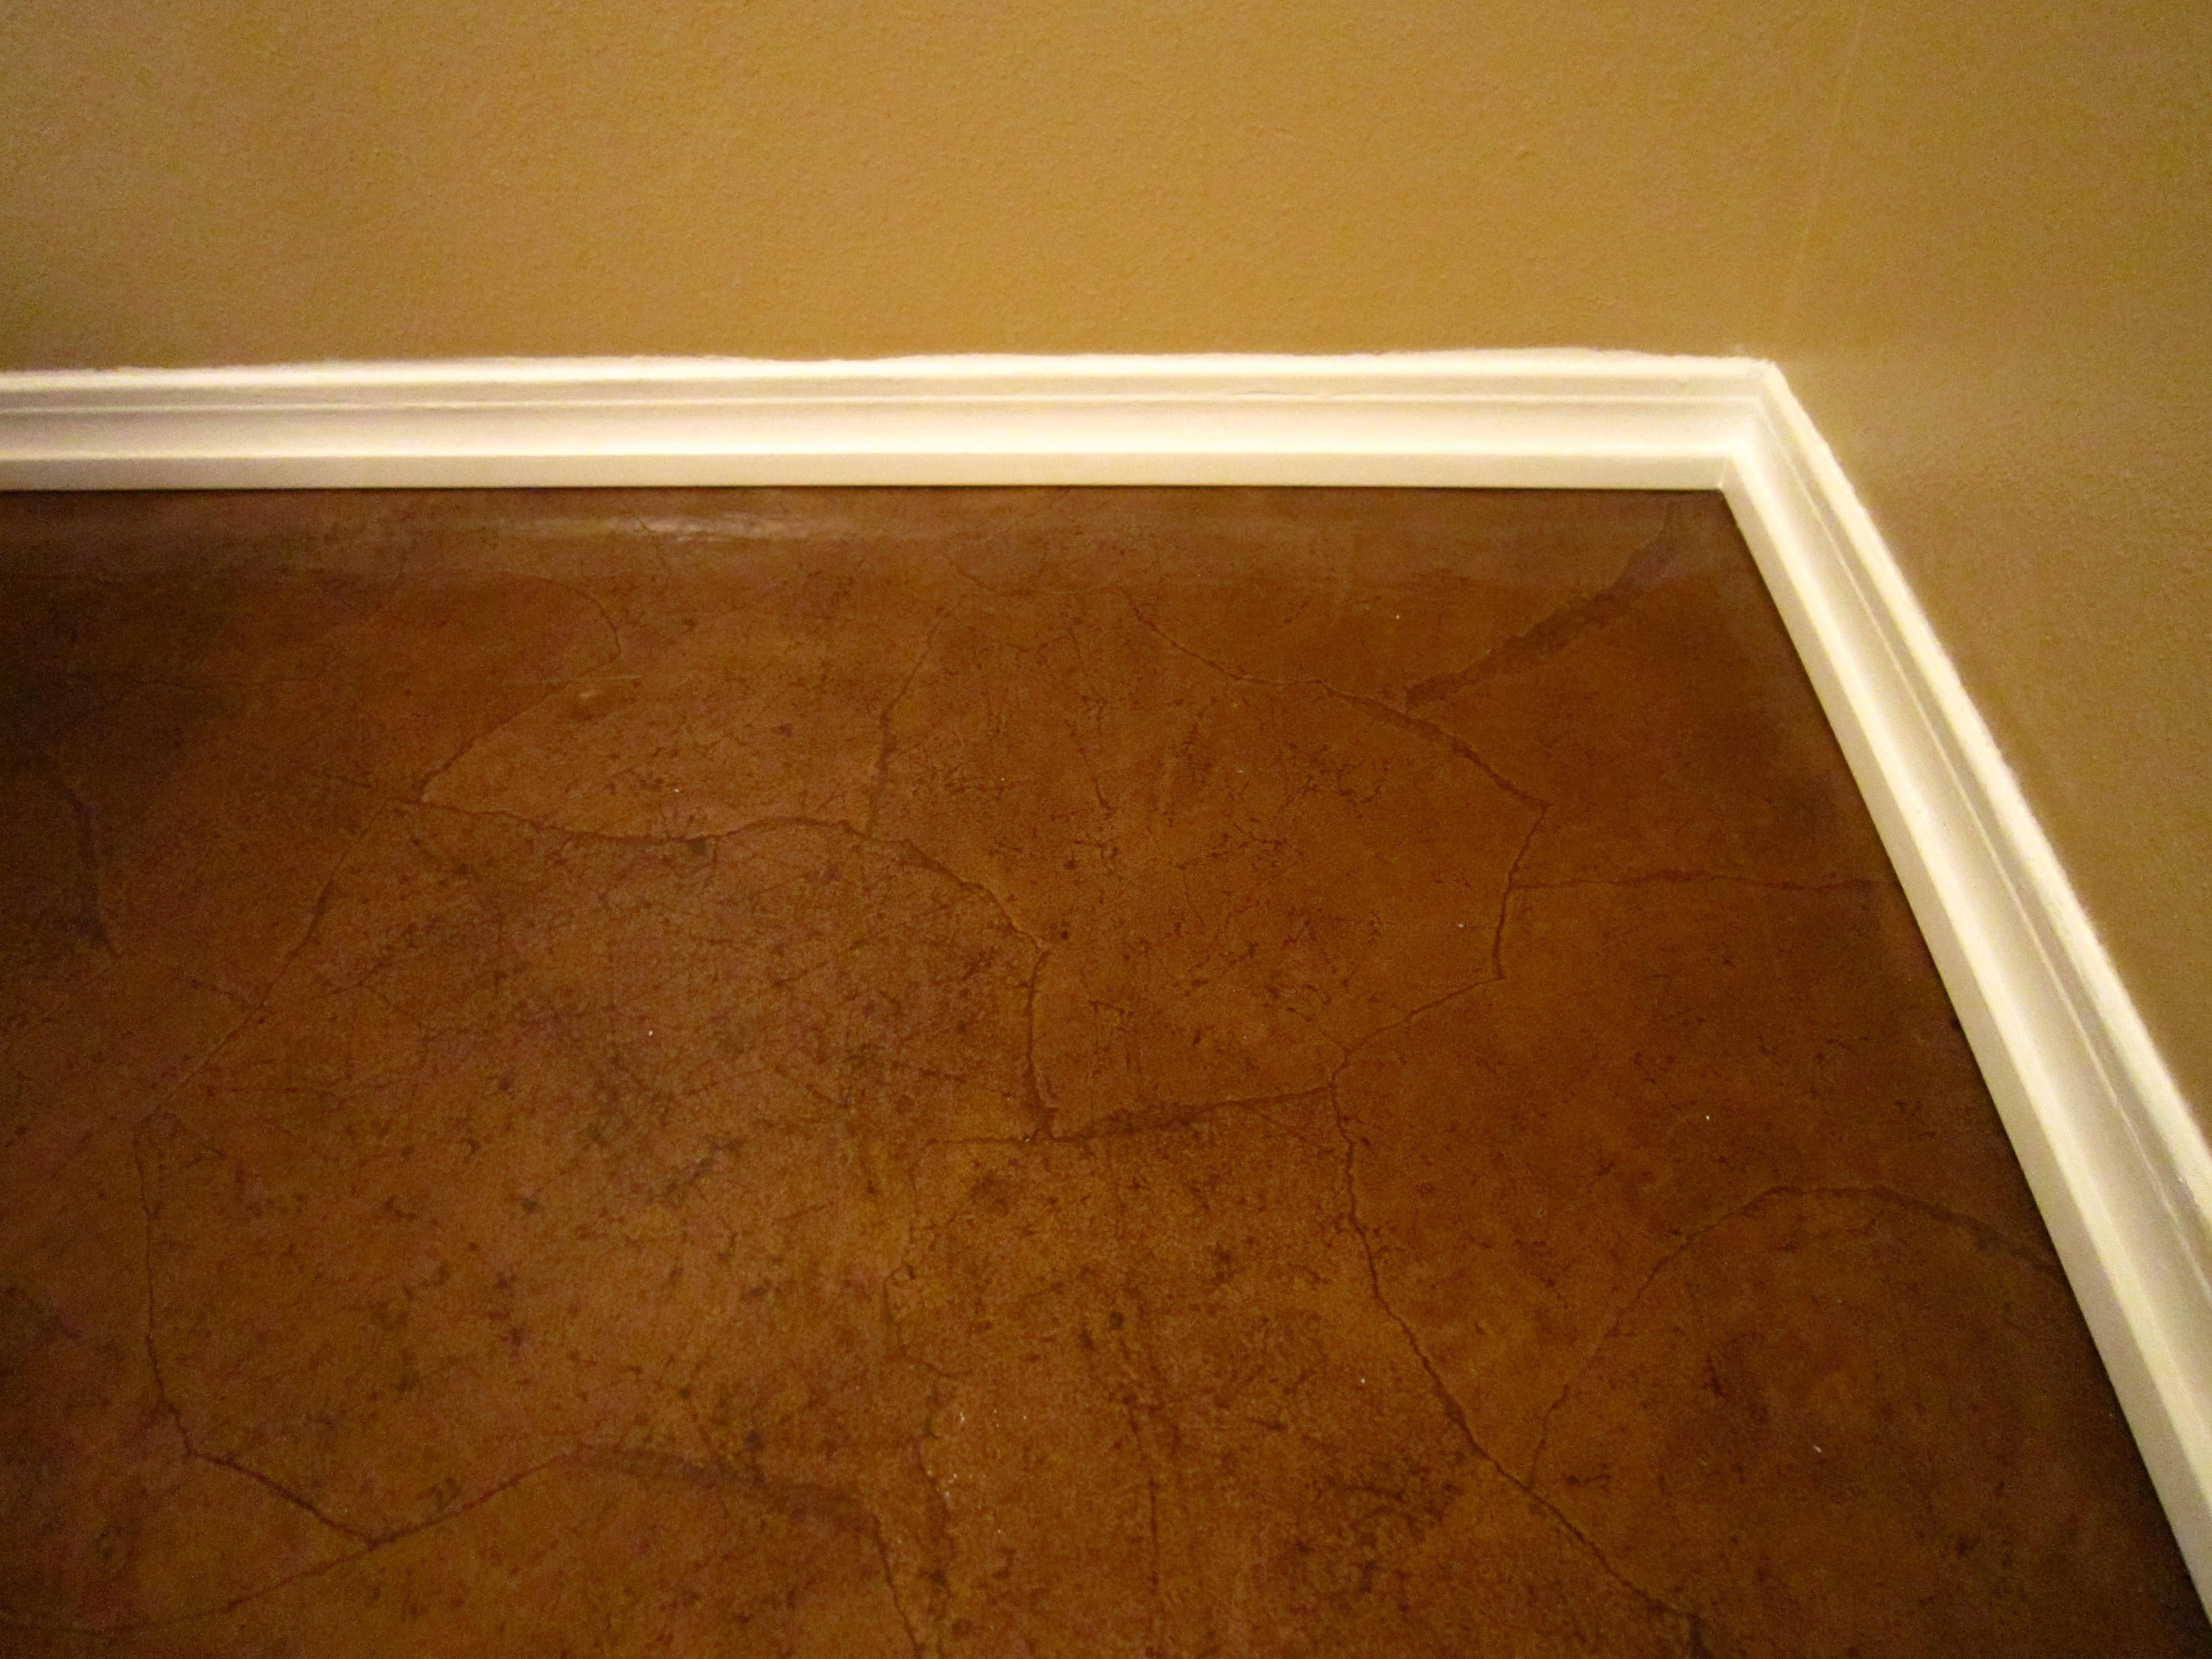 Diy stained brown paper floor awesomeness under 30 do it yourself diy stained brown paper floor awesomeness under 30 do it yourself hardwoodlaminate solutioingenieria Gallery